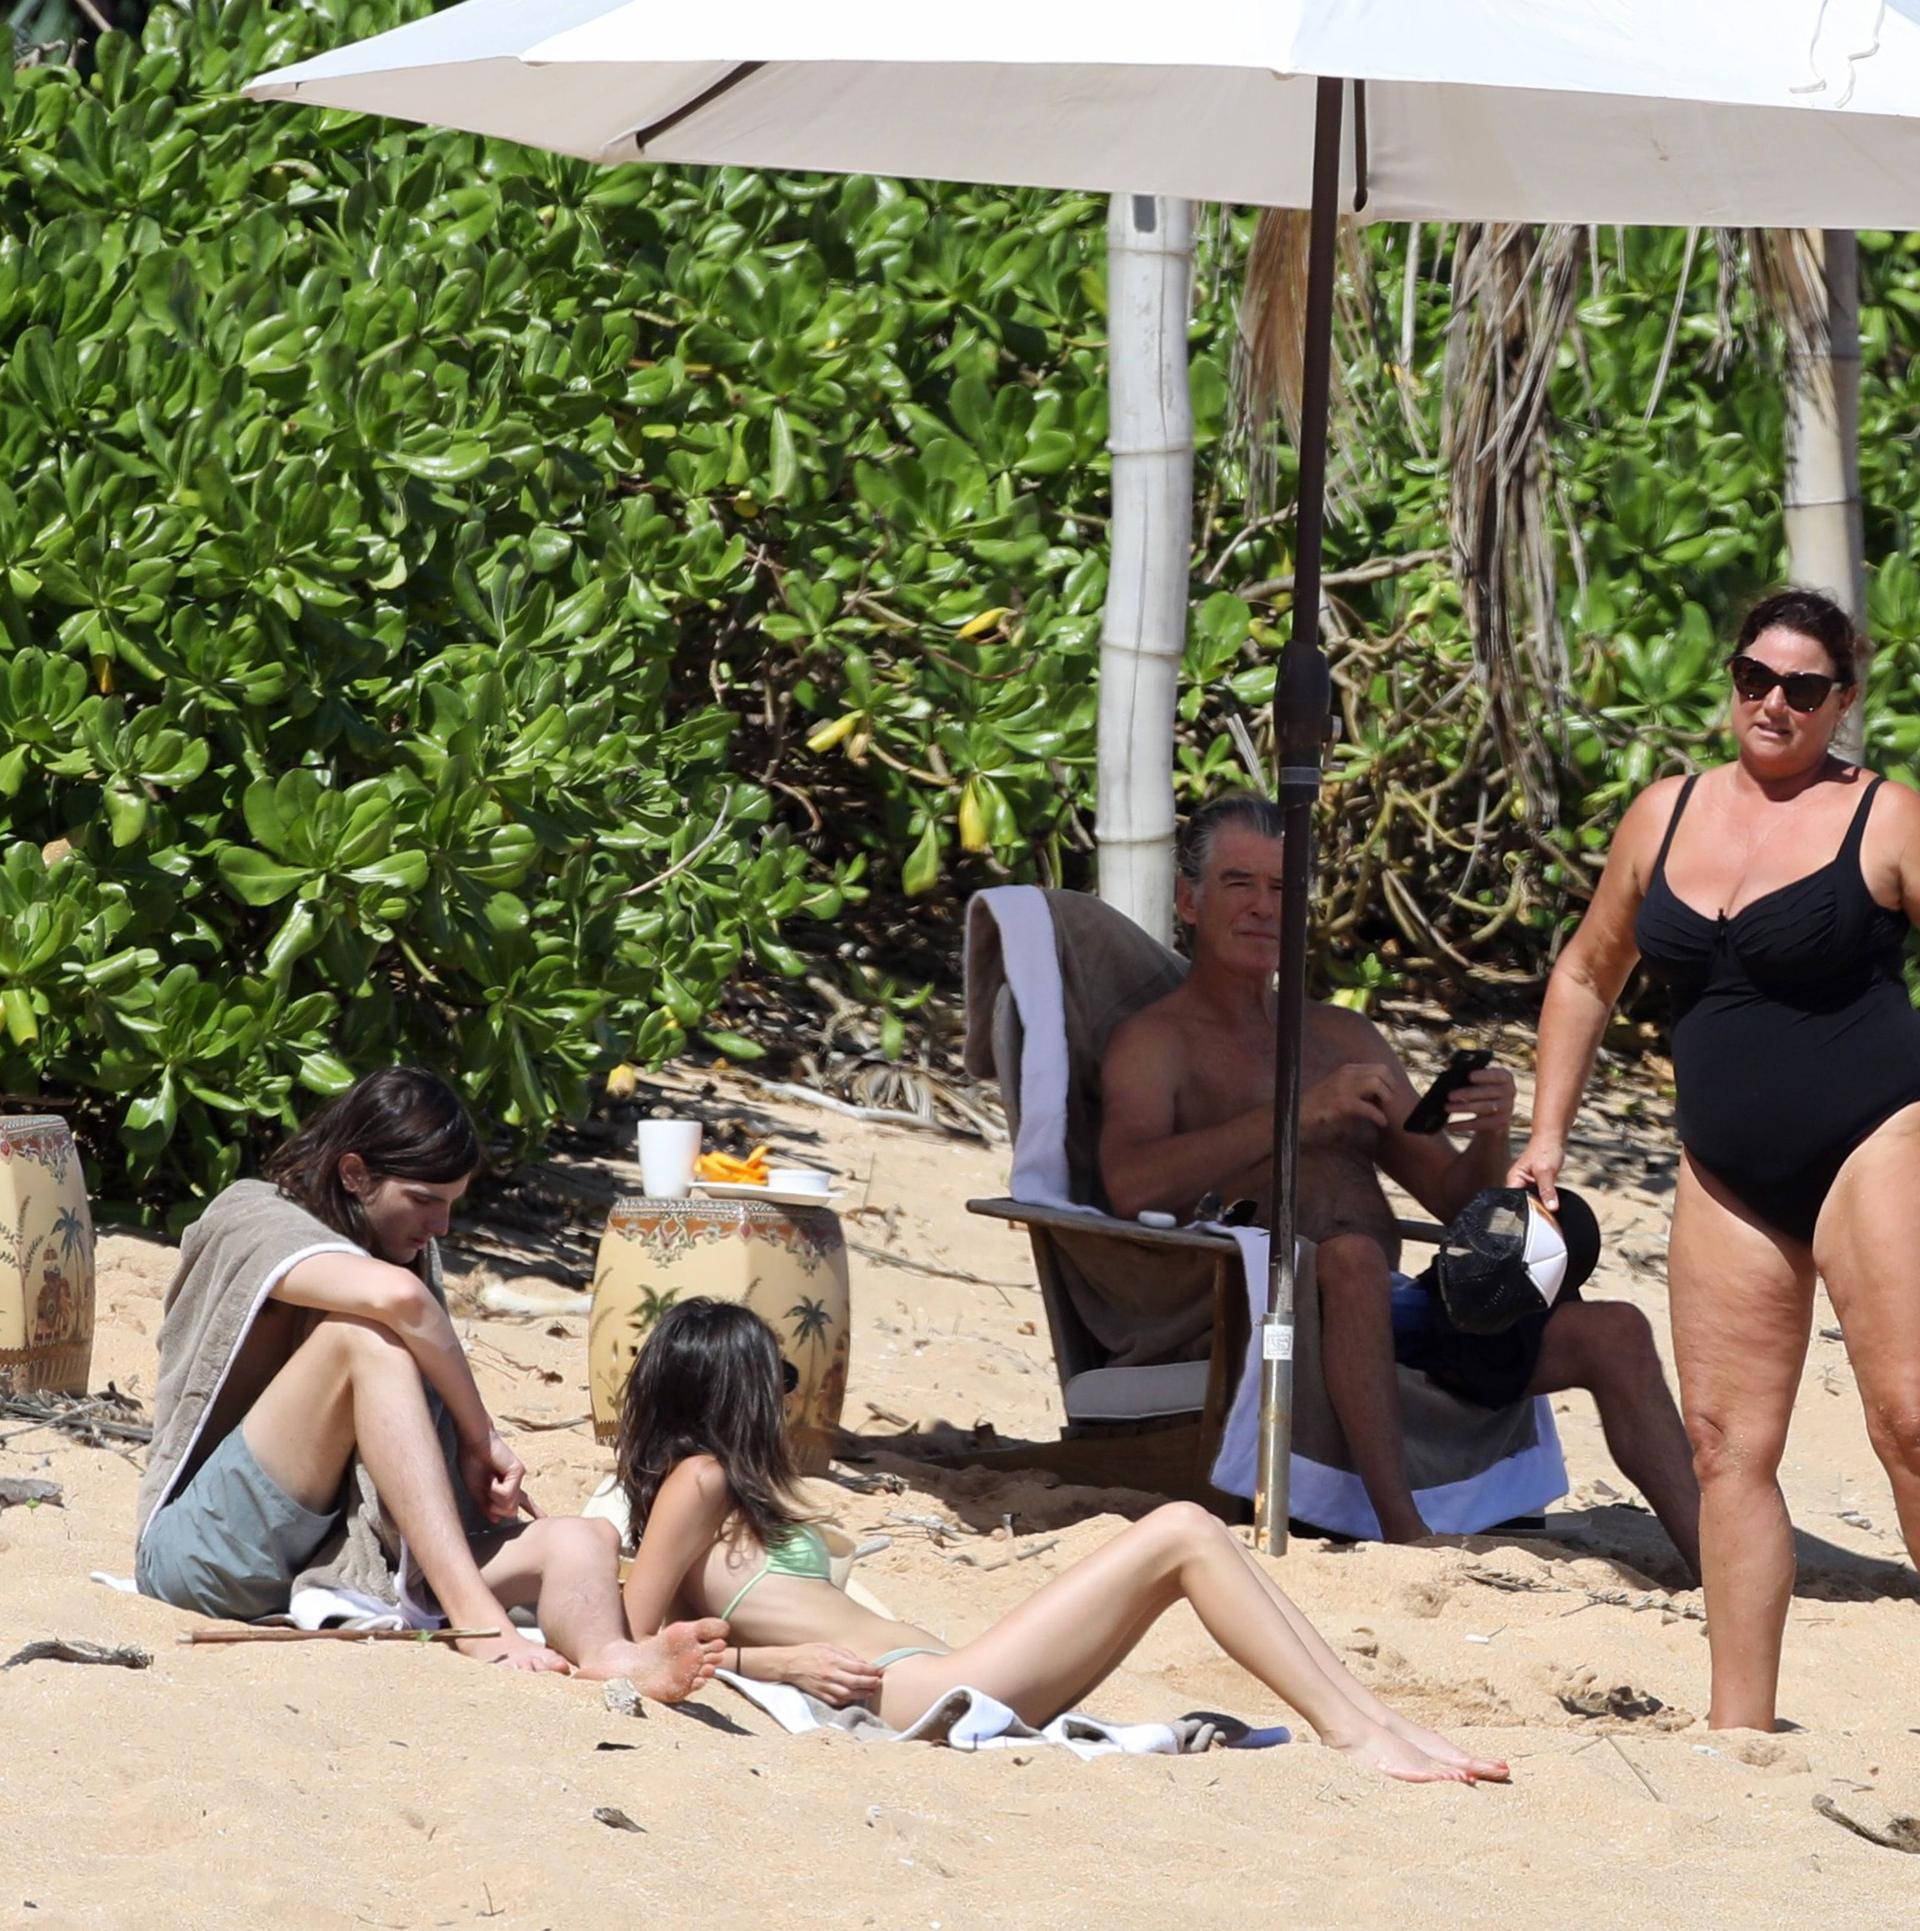 EXCLUSIVE: *NO WEB UNTIL 1530 EST 22ND MAR* Pierce Brosnan hits the beach in Hawaii with his wife Keely Shaye Smith and son Dylan, The former 007 star took a dip in the ocean before relaxing with the family under a umbrella on the beach.